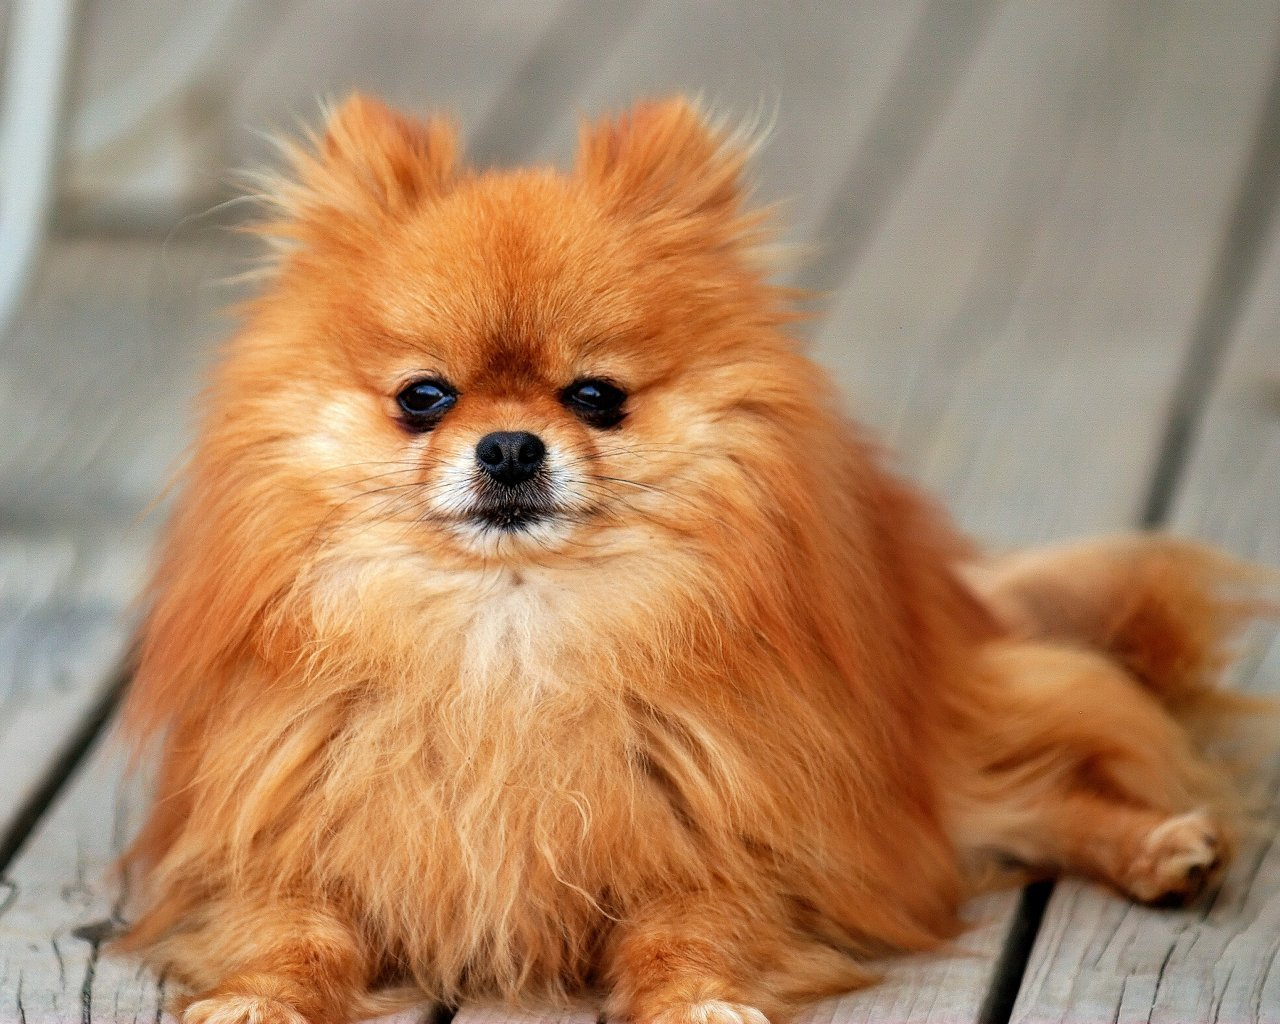 All Small Dogs Images Pomeranian Hd Wallpaper And Background Photos